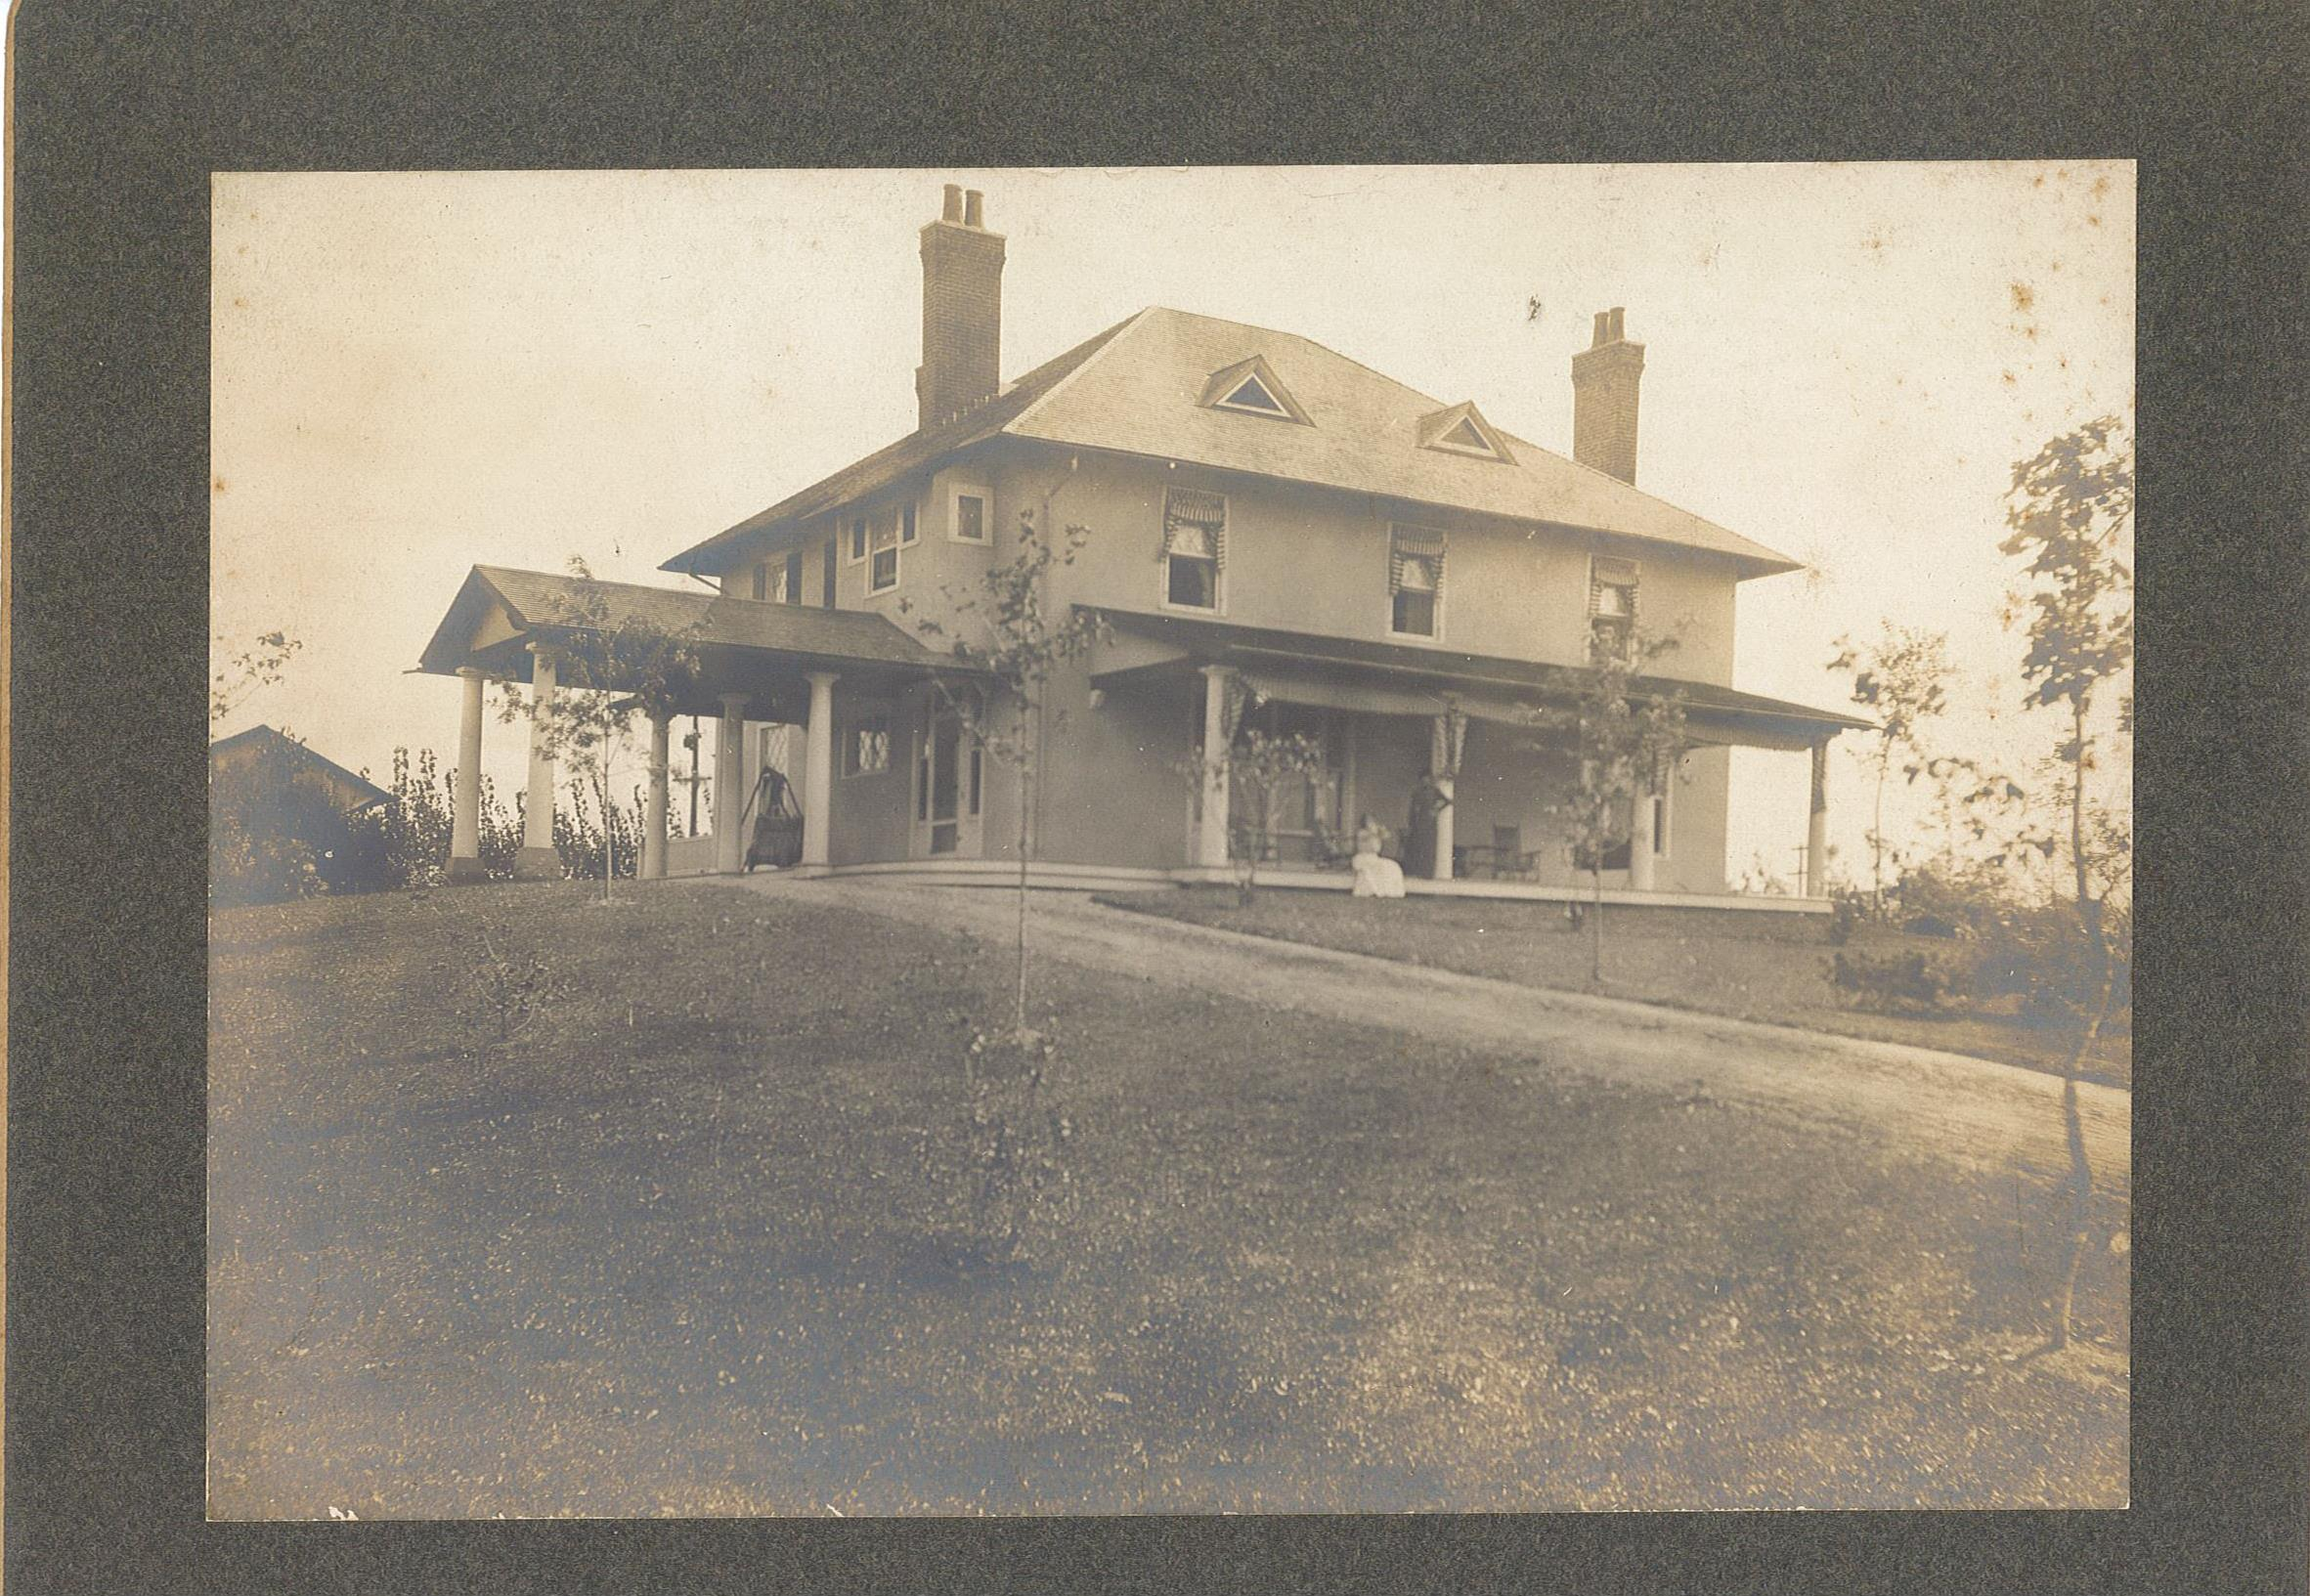 Image of Charlton Farm house in Avon